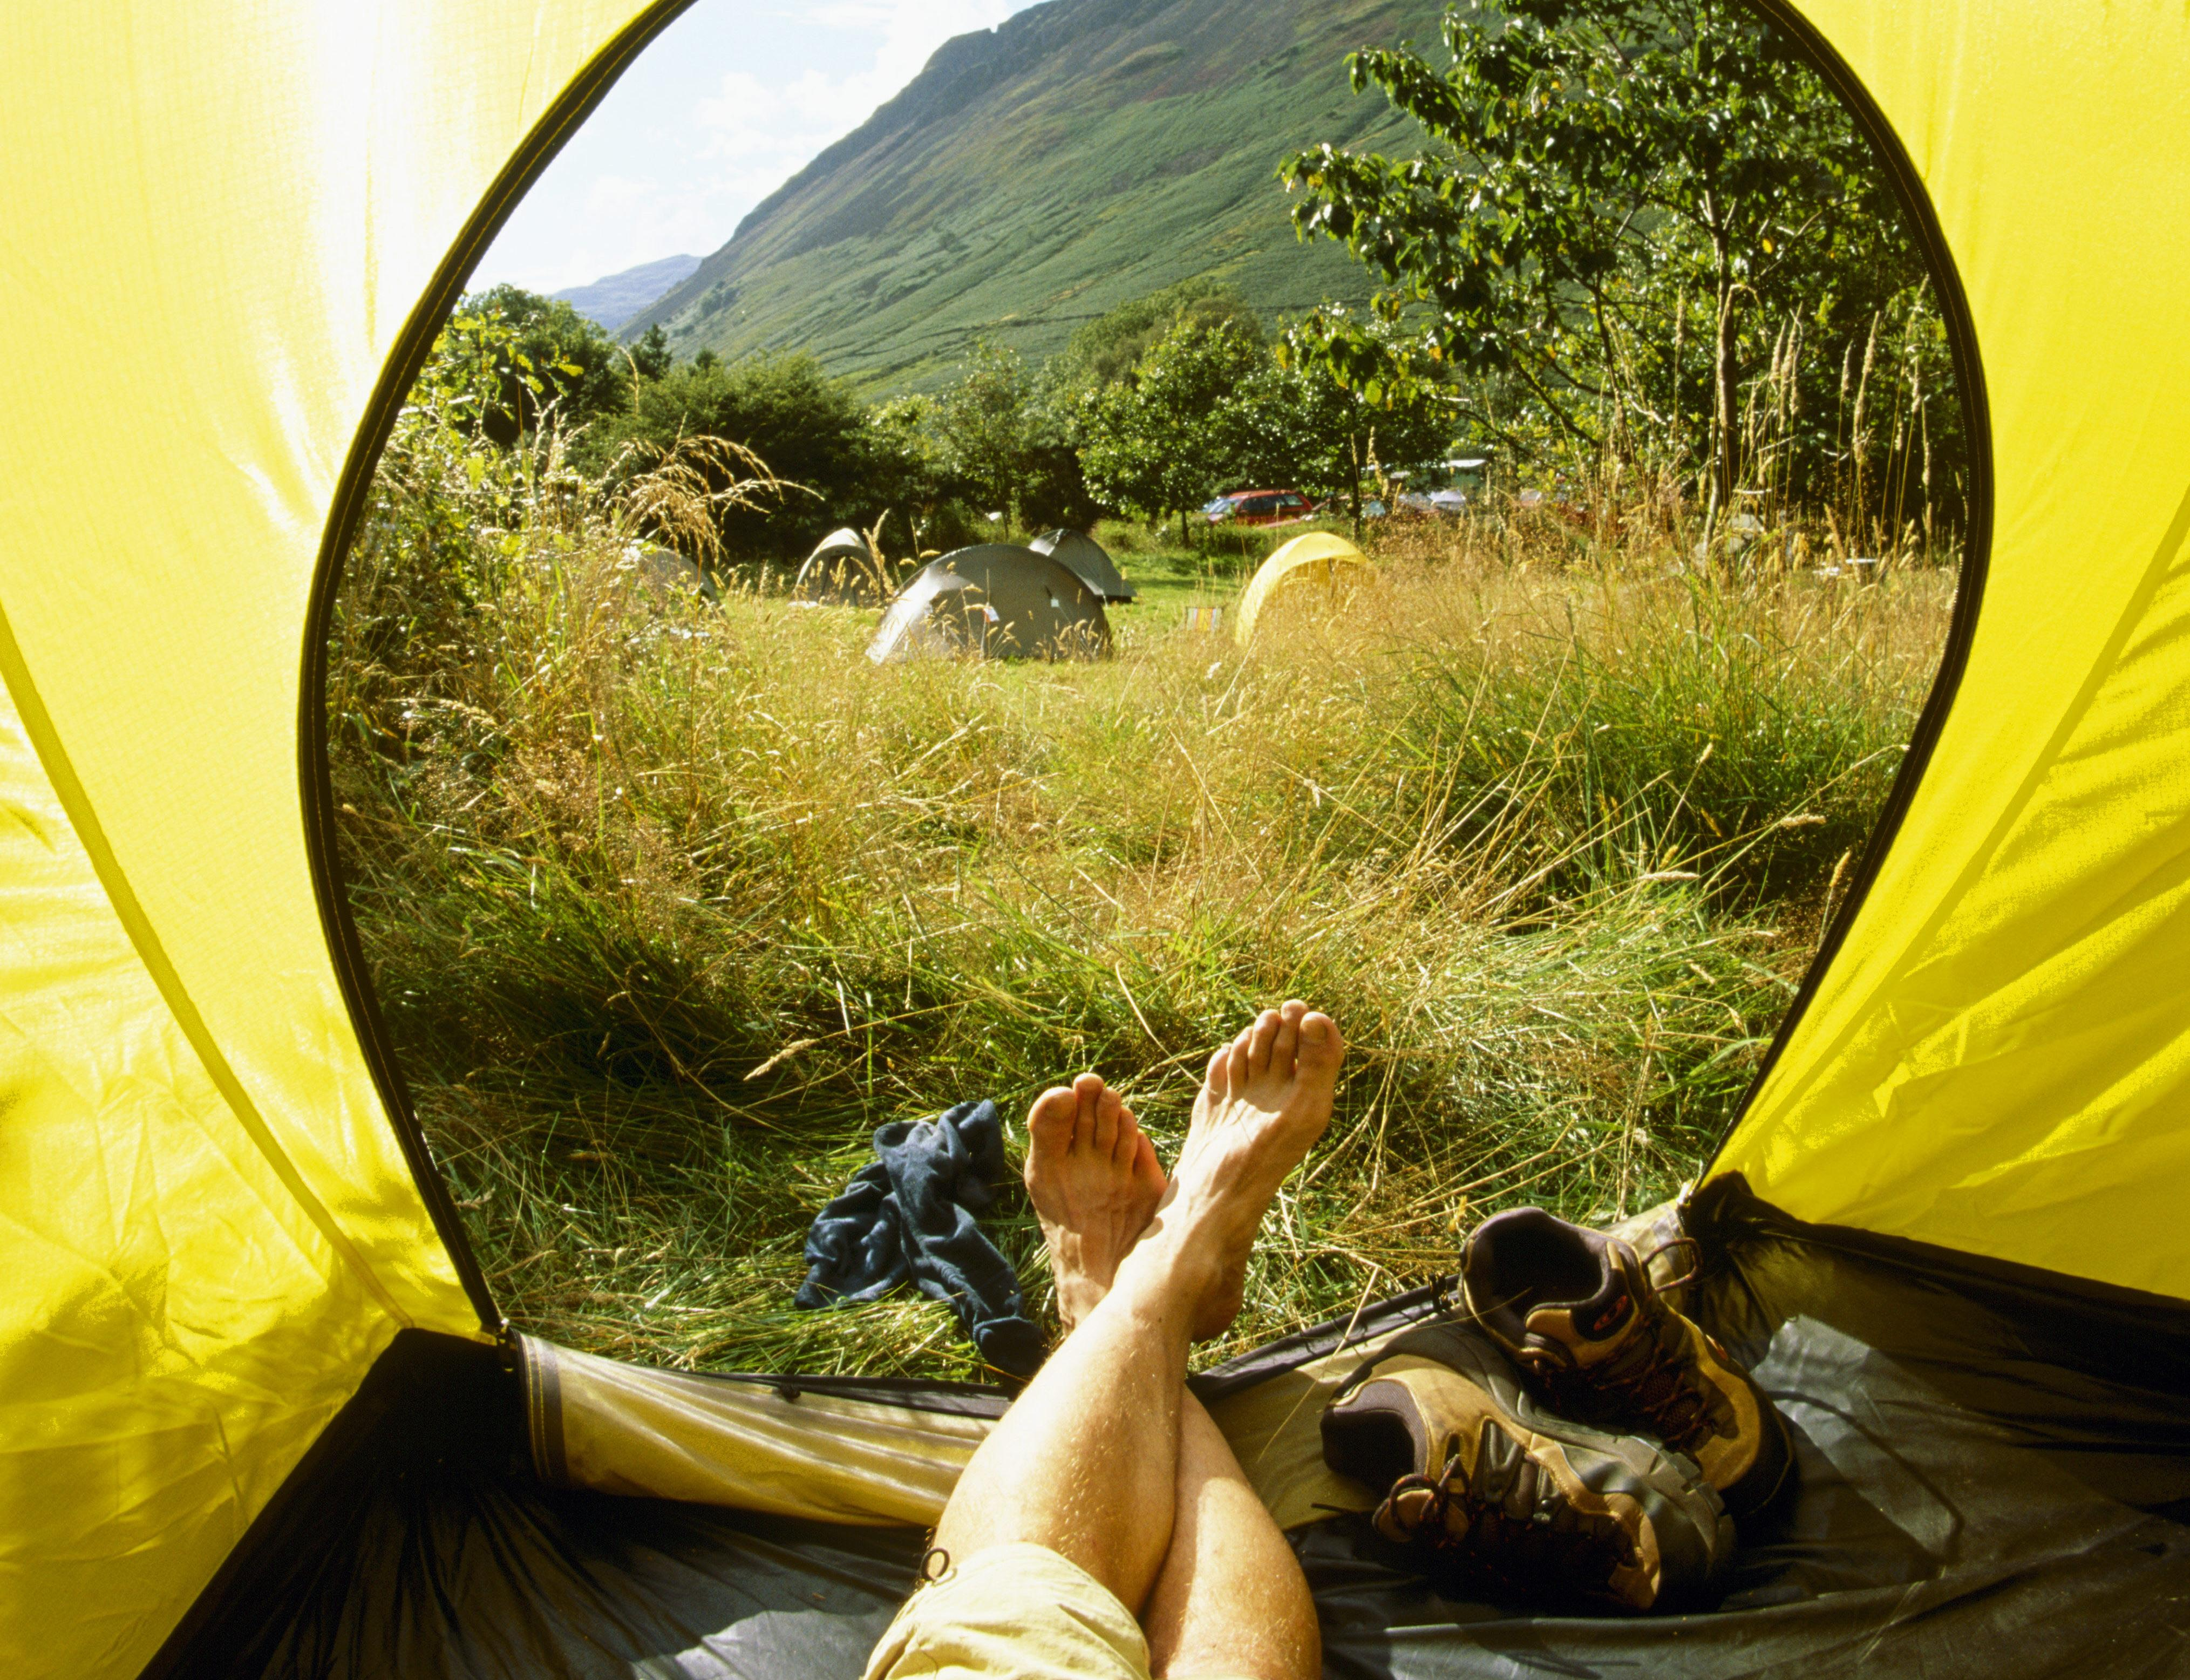 20 of the best campsites in the UK and Europe accessible by public transport